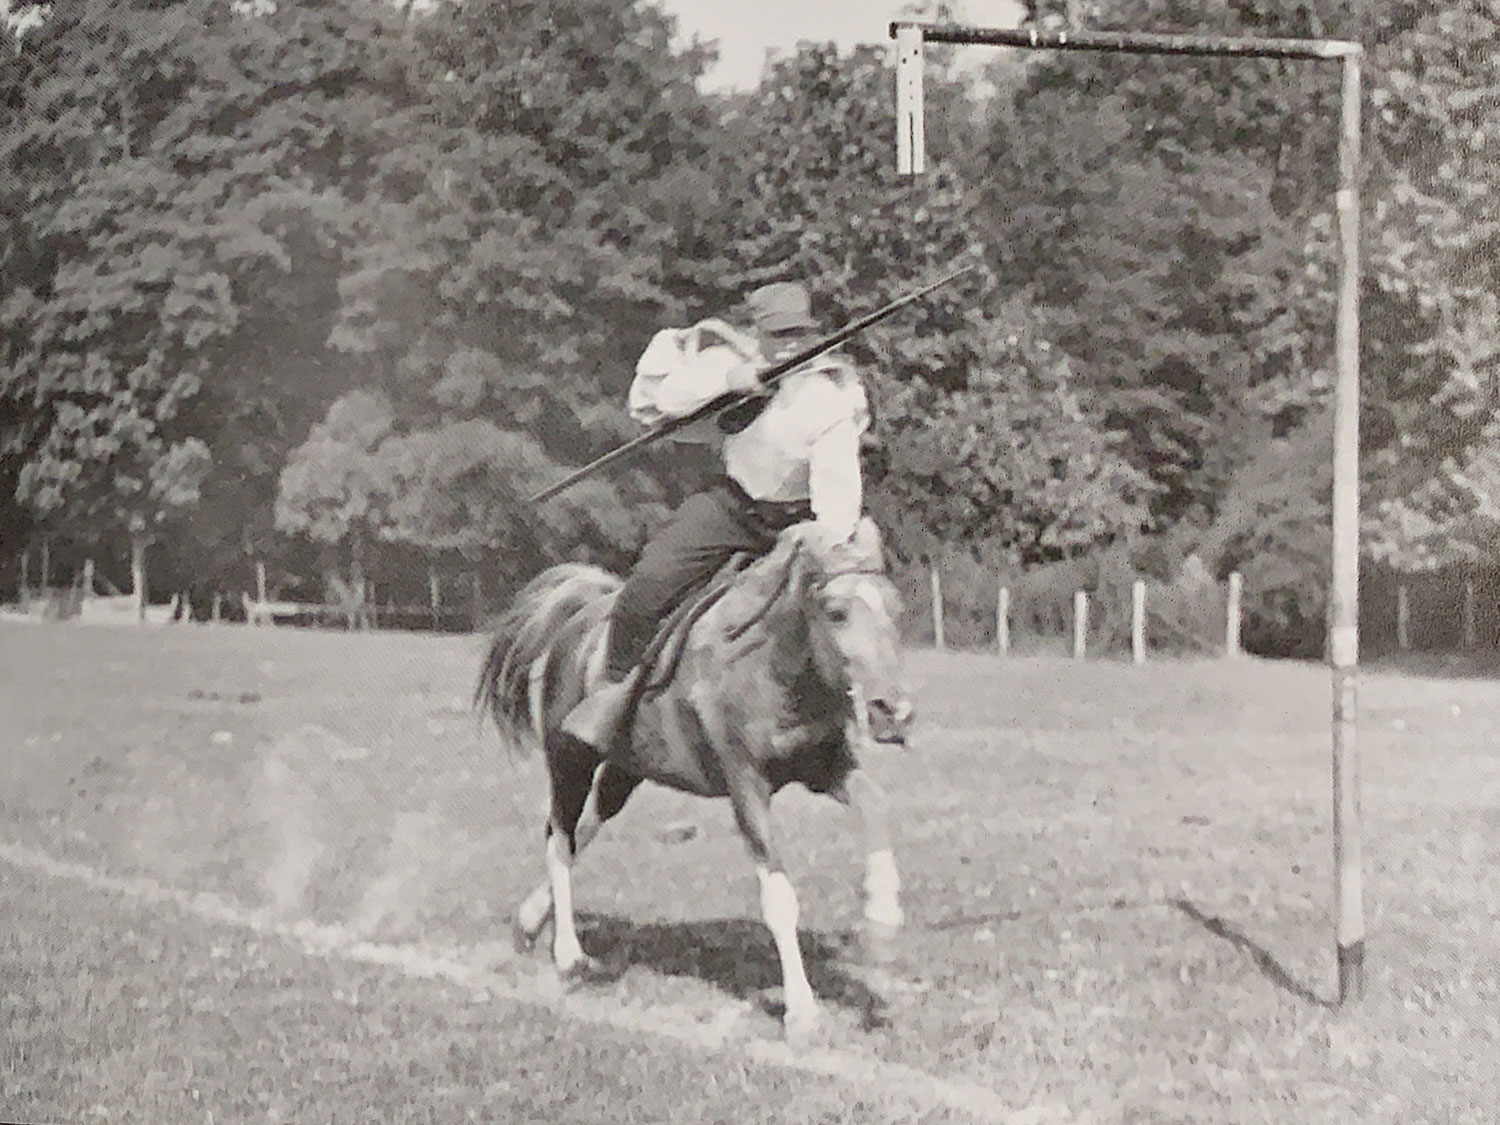 An unidentified rider is moving at full gallop, trying to win the 1952 ring spearing tournament tournament held during the tri-centennial celebration.